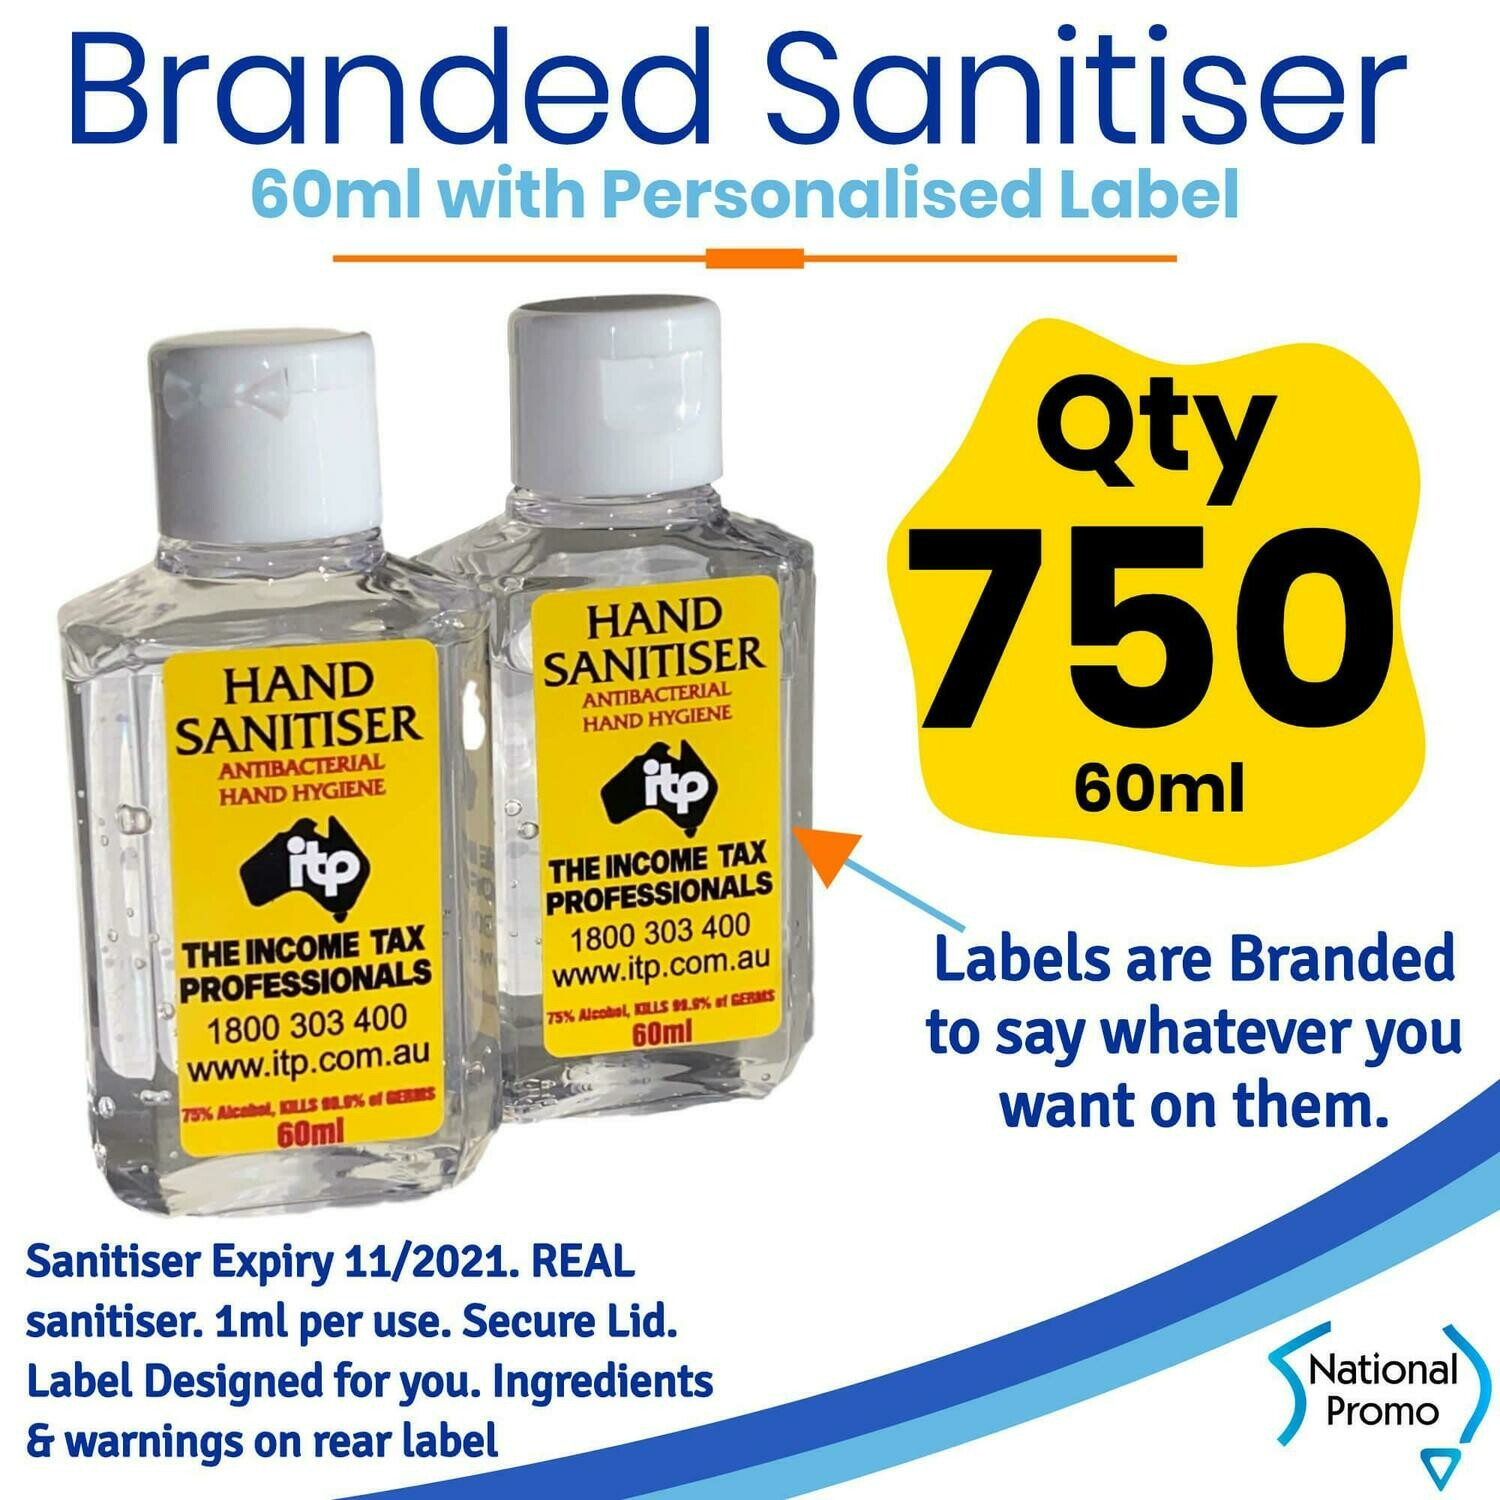 Qty of 750 x 60ml Hand Sanitiser with Personalised Labels